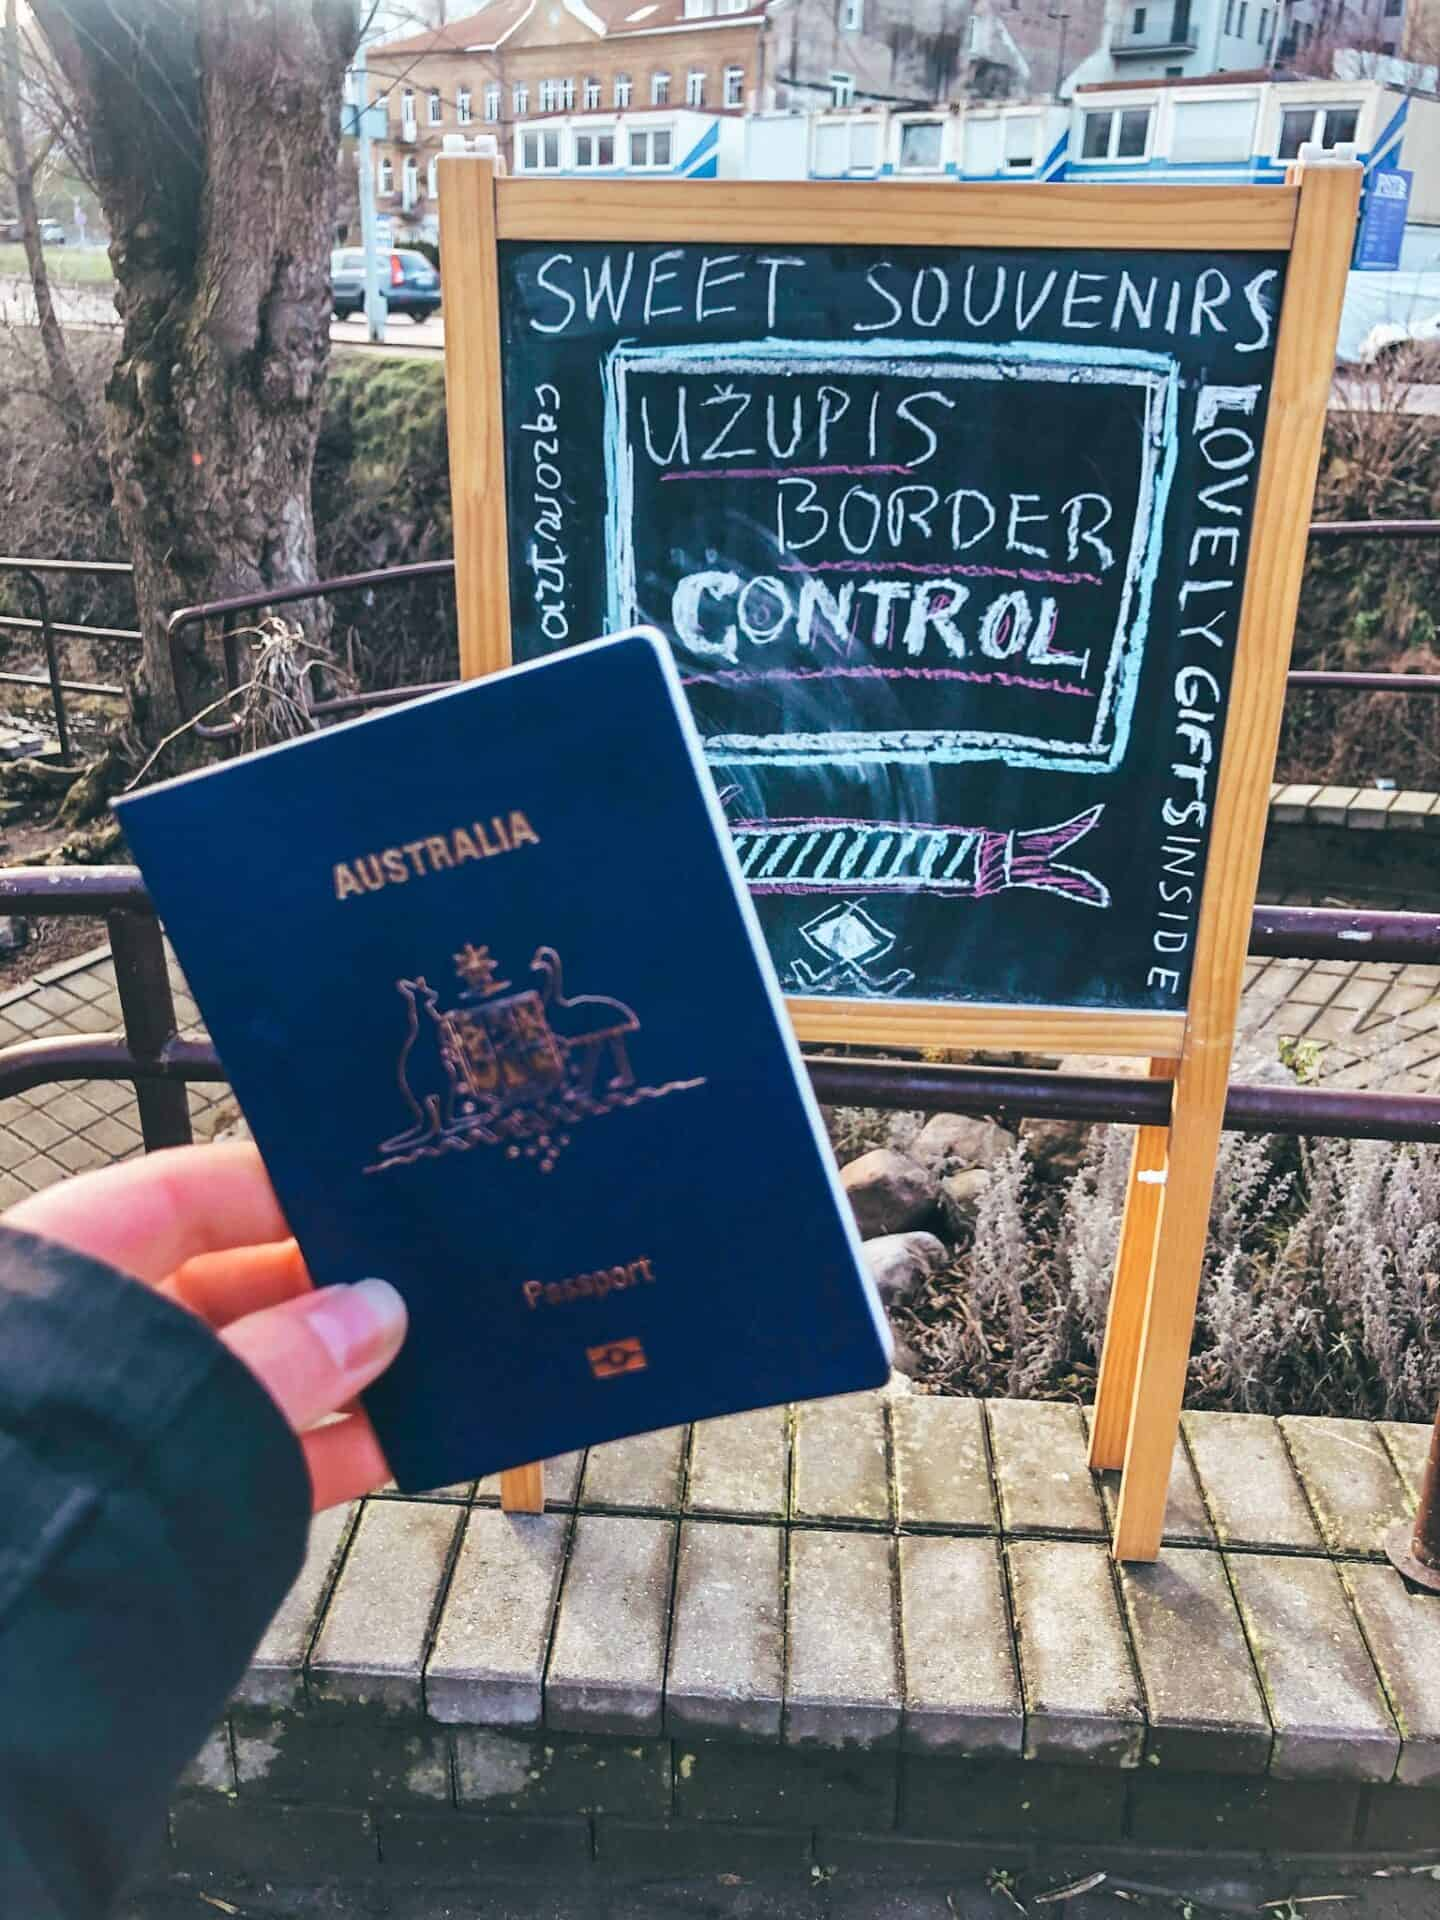 An Australian passport in front of a board saying Uzupis border control